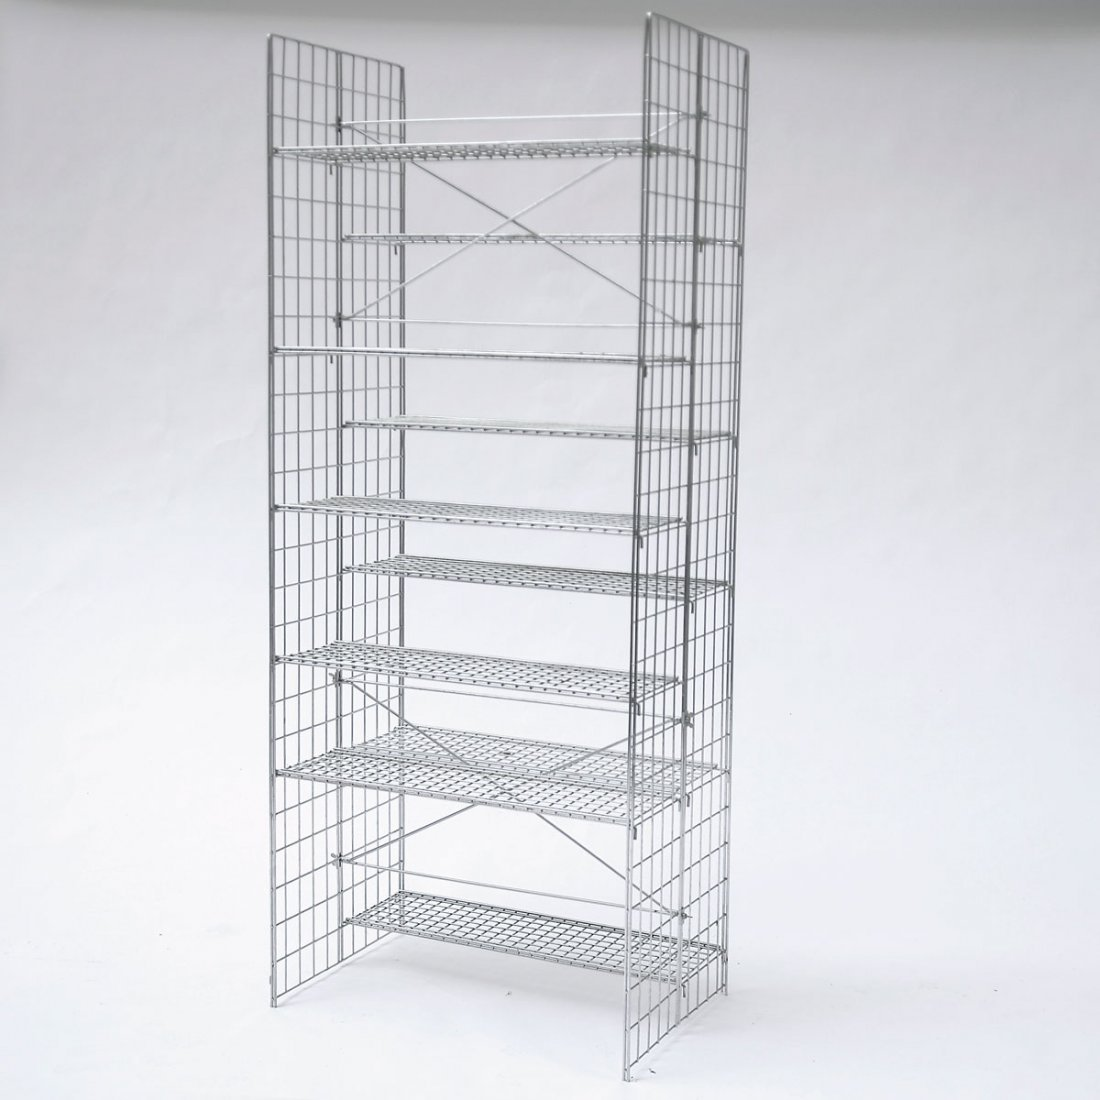 Otl Aicher. Prototype shelf, c1975. H. 188 x 85 x 50.5